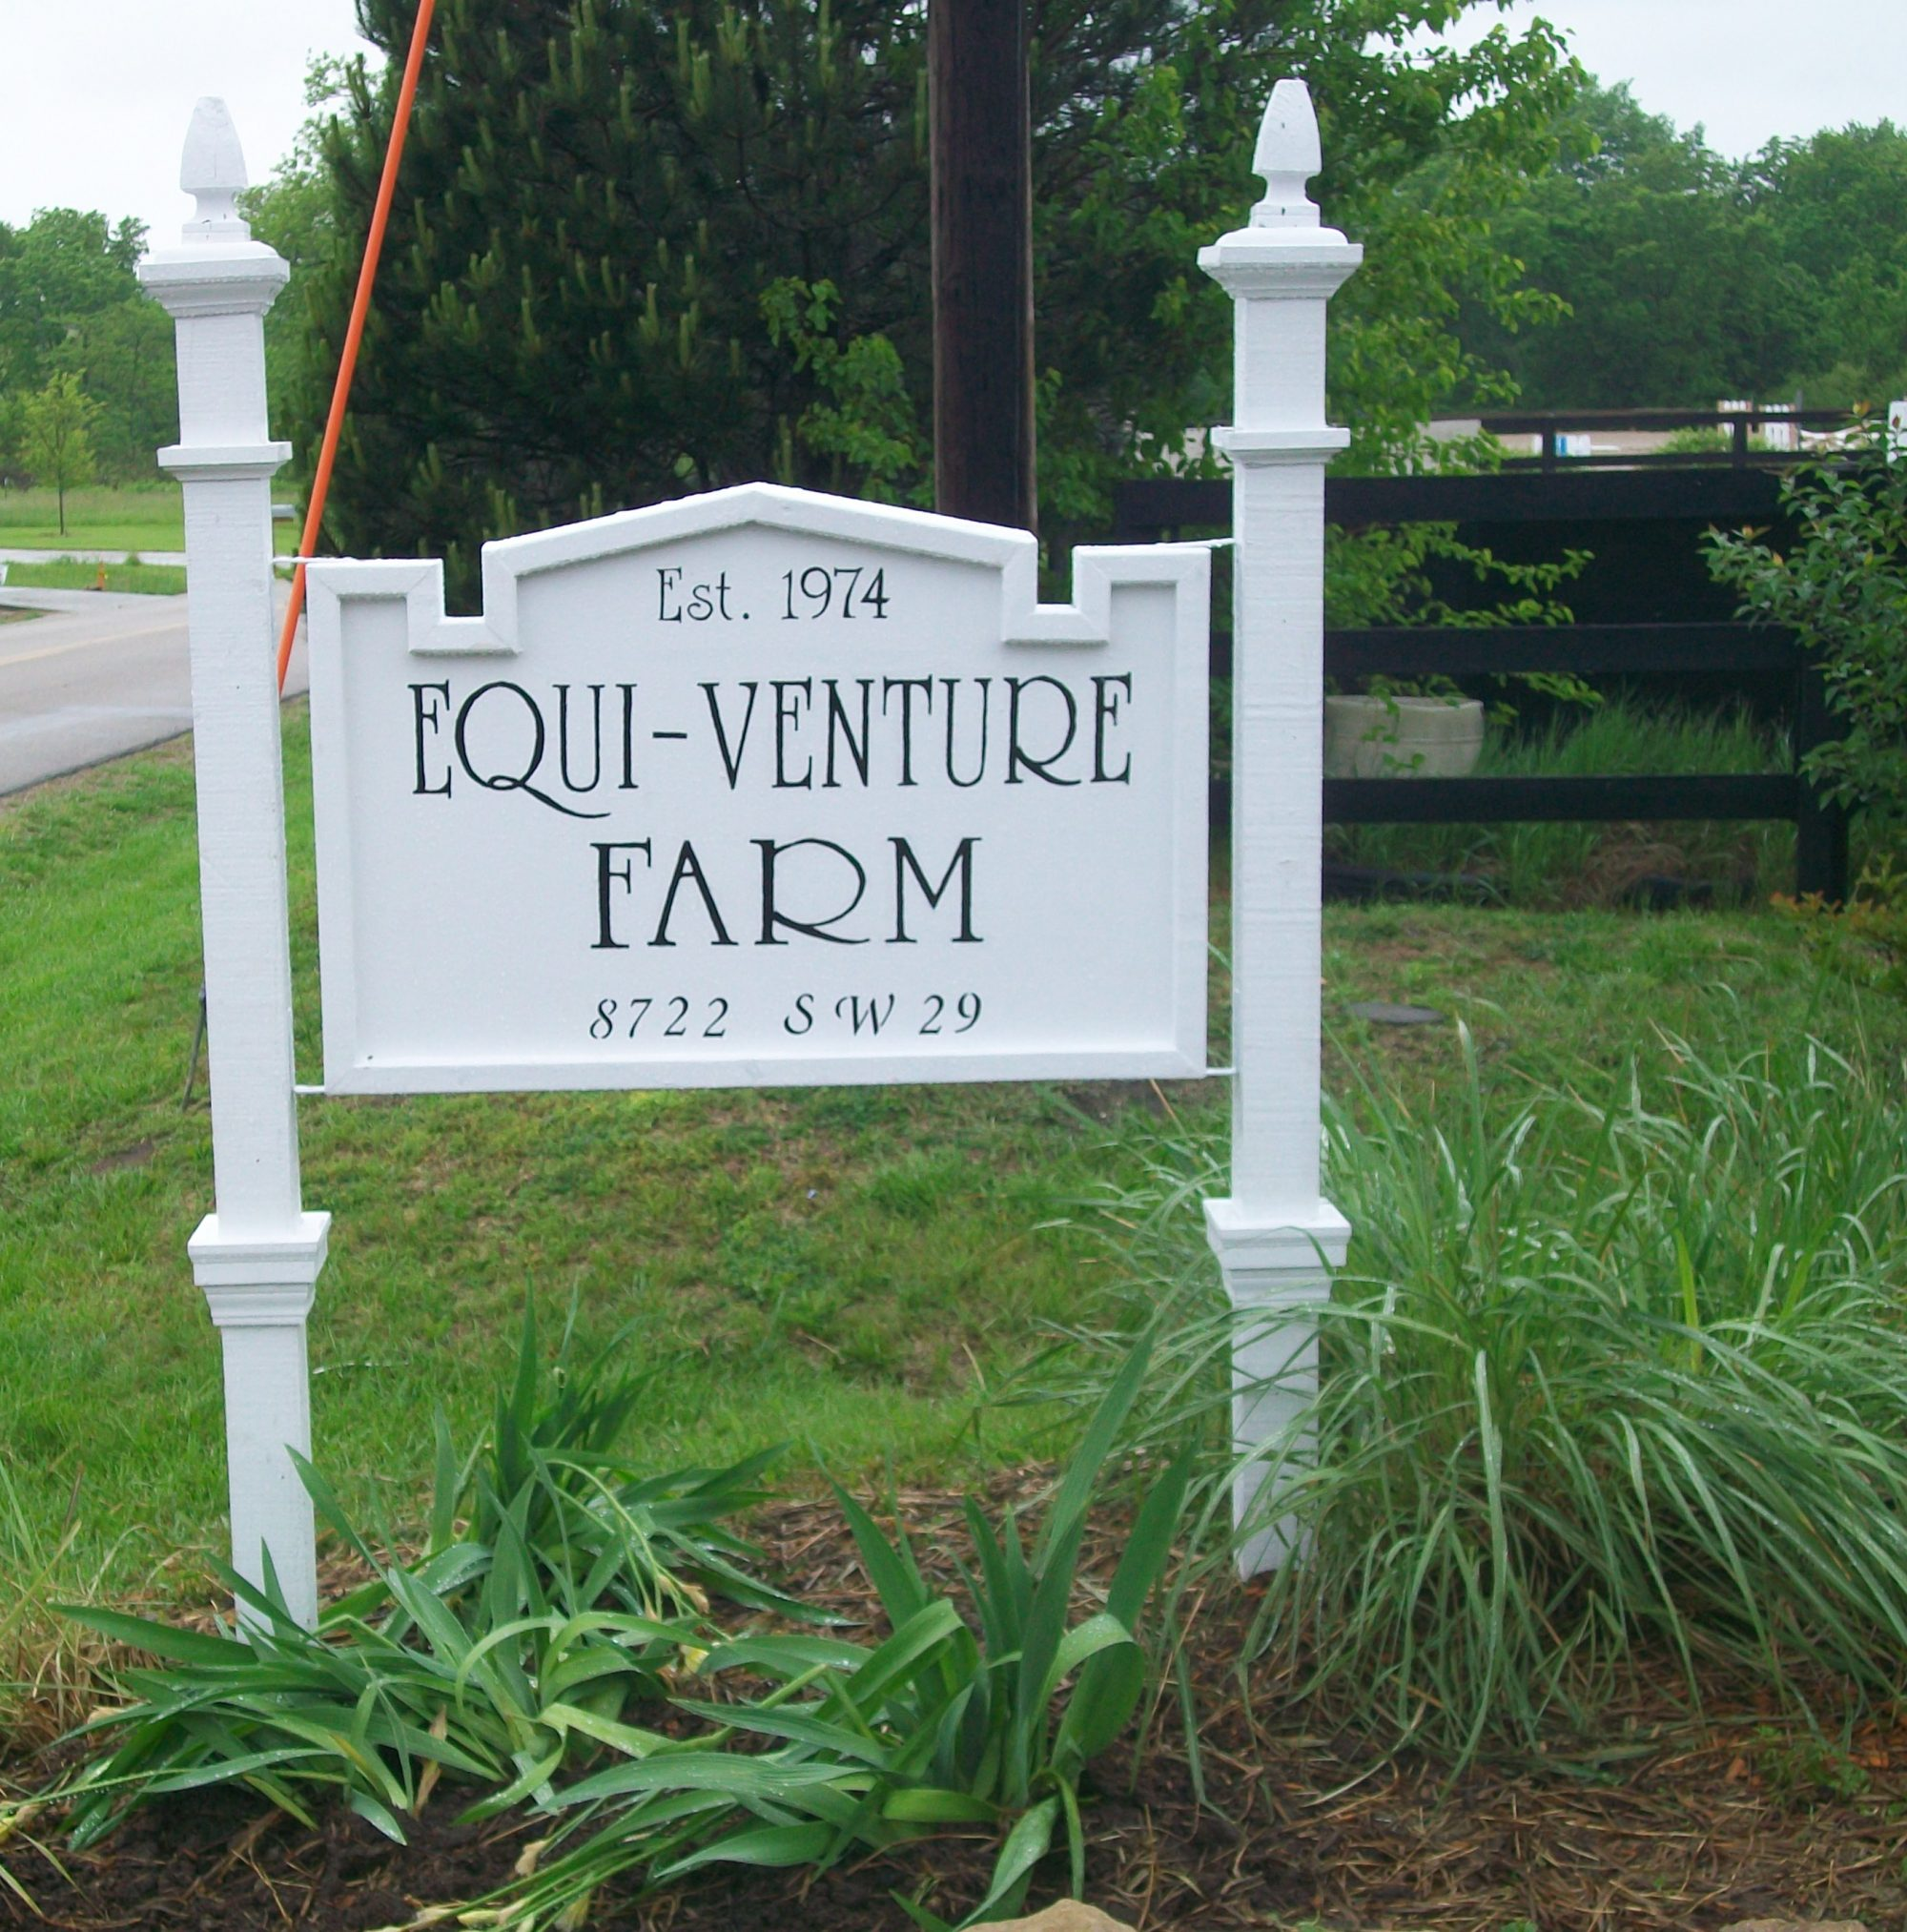 Equi-Venture Farms, L.L.C.